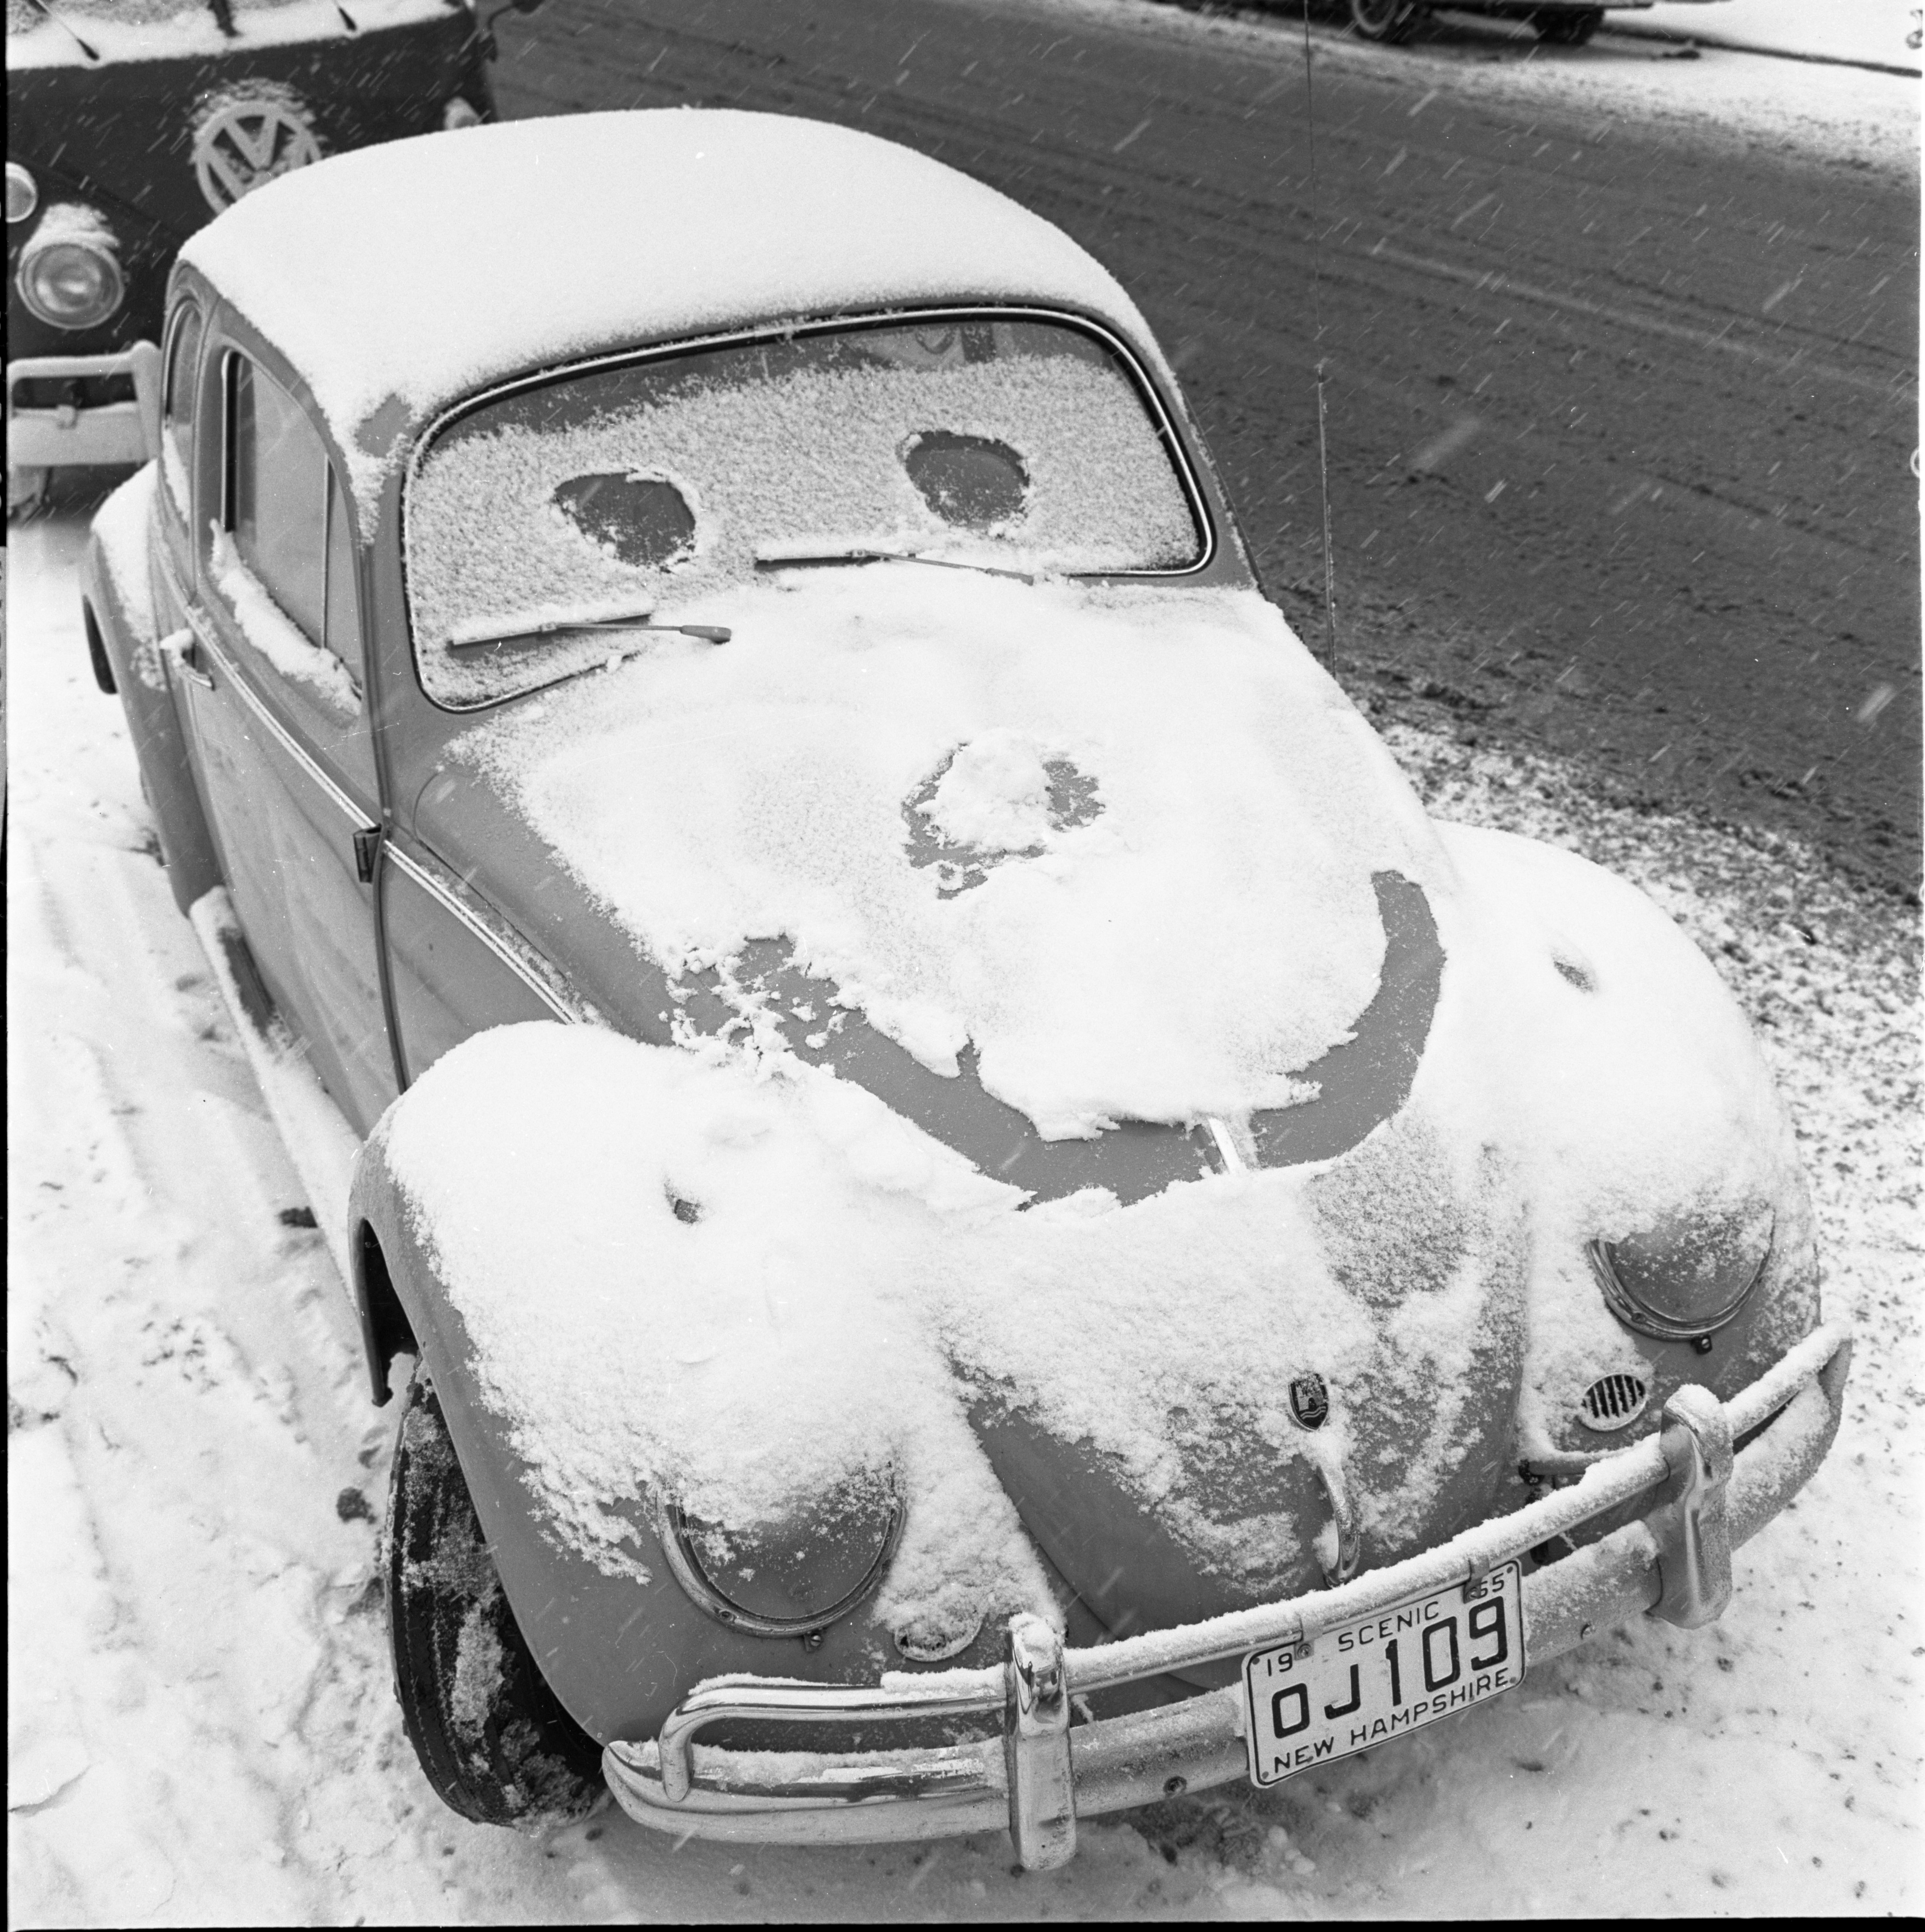 Smiling Snow-Covered Volkswagen Beetle, January 1966 image